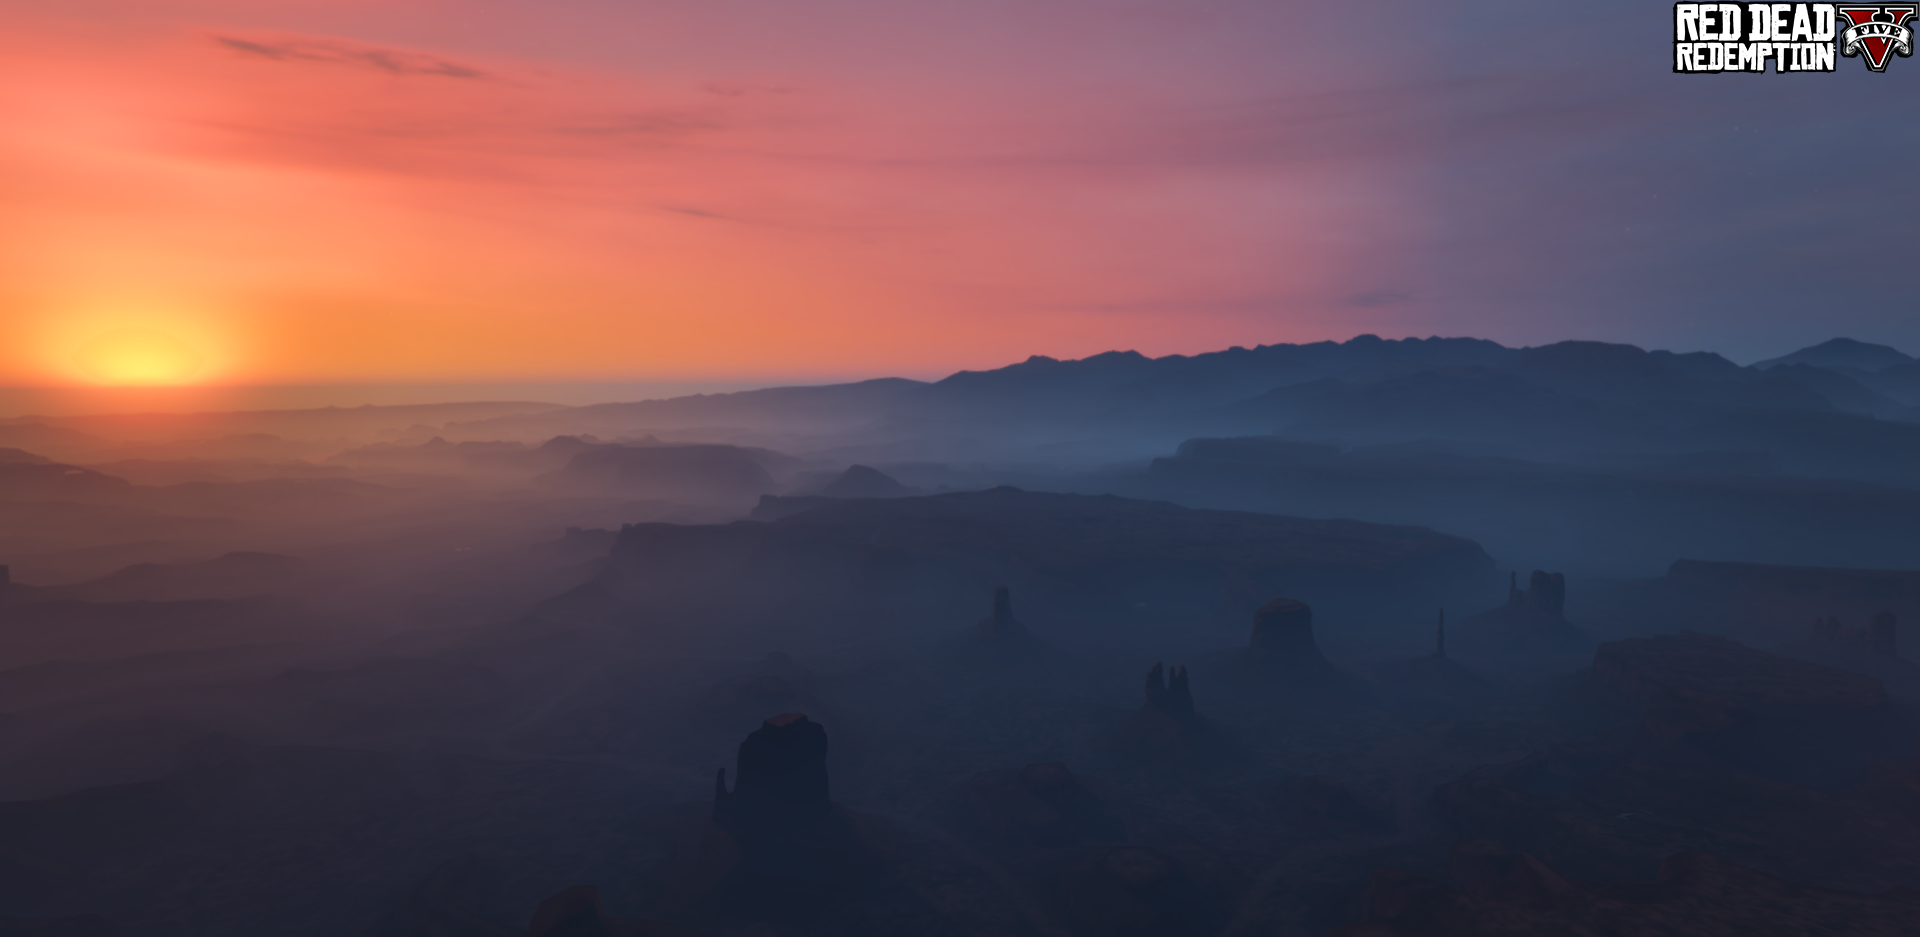 Photo of Red Dead Redemption ajunge pe PC, prin GTA 5